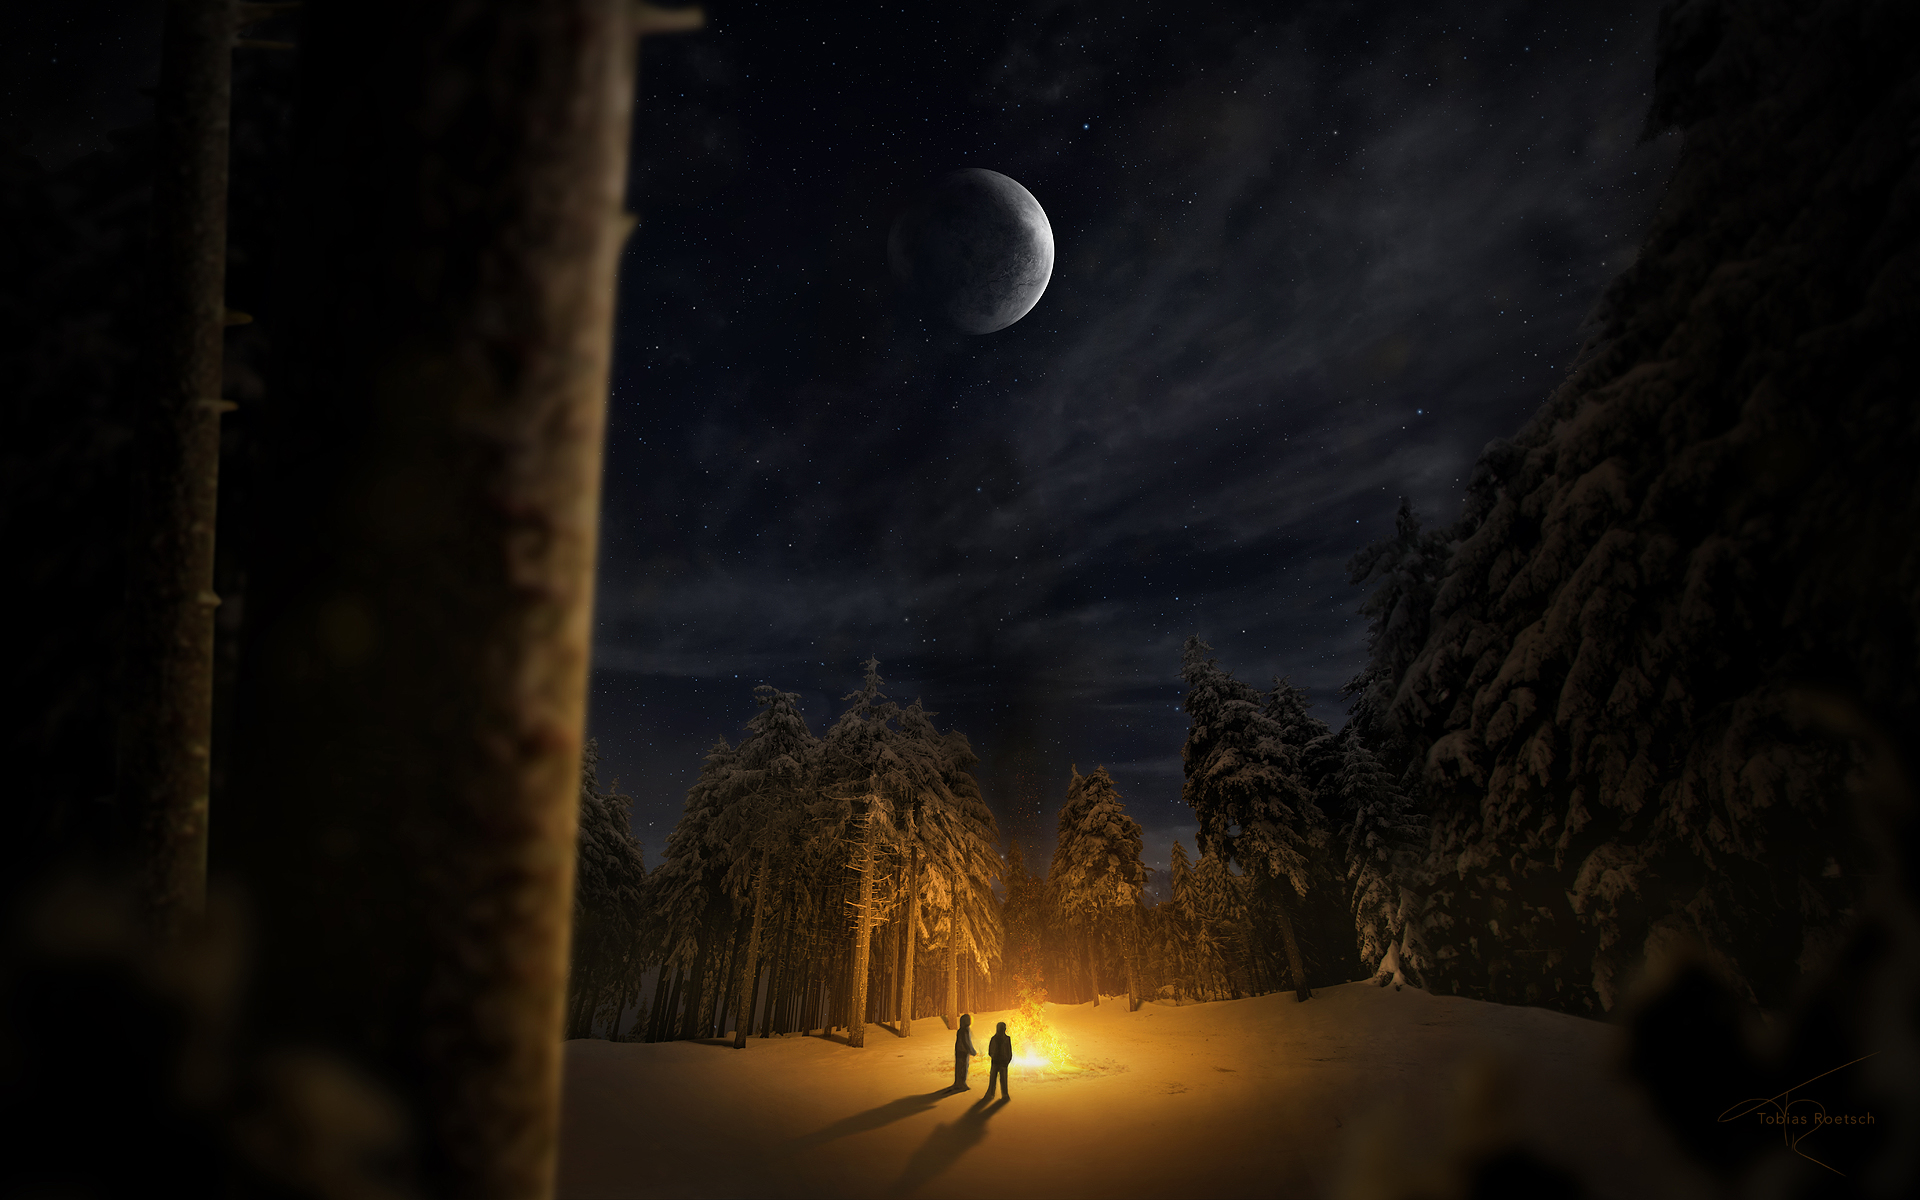 Falling Snow Wallpaper For Ipad Free Download Natural Scenery Wallpaper Of Campfire A